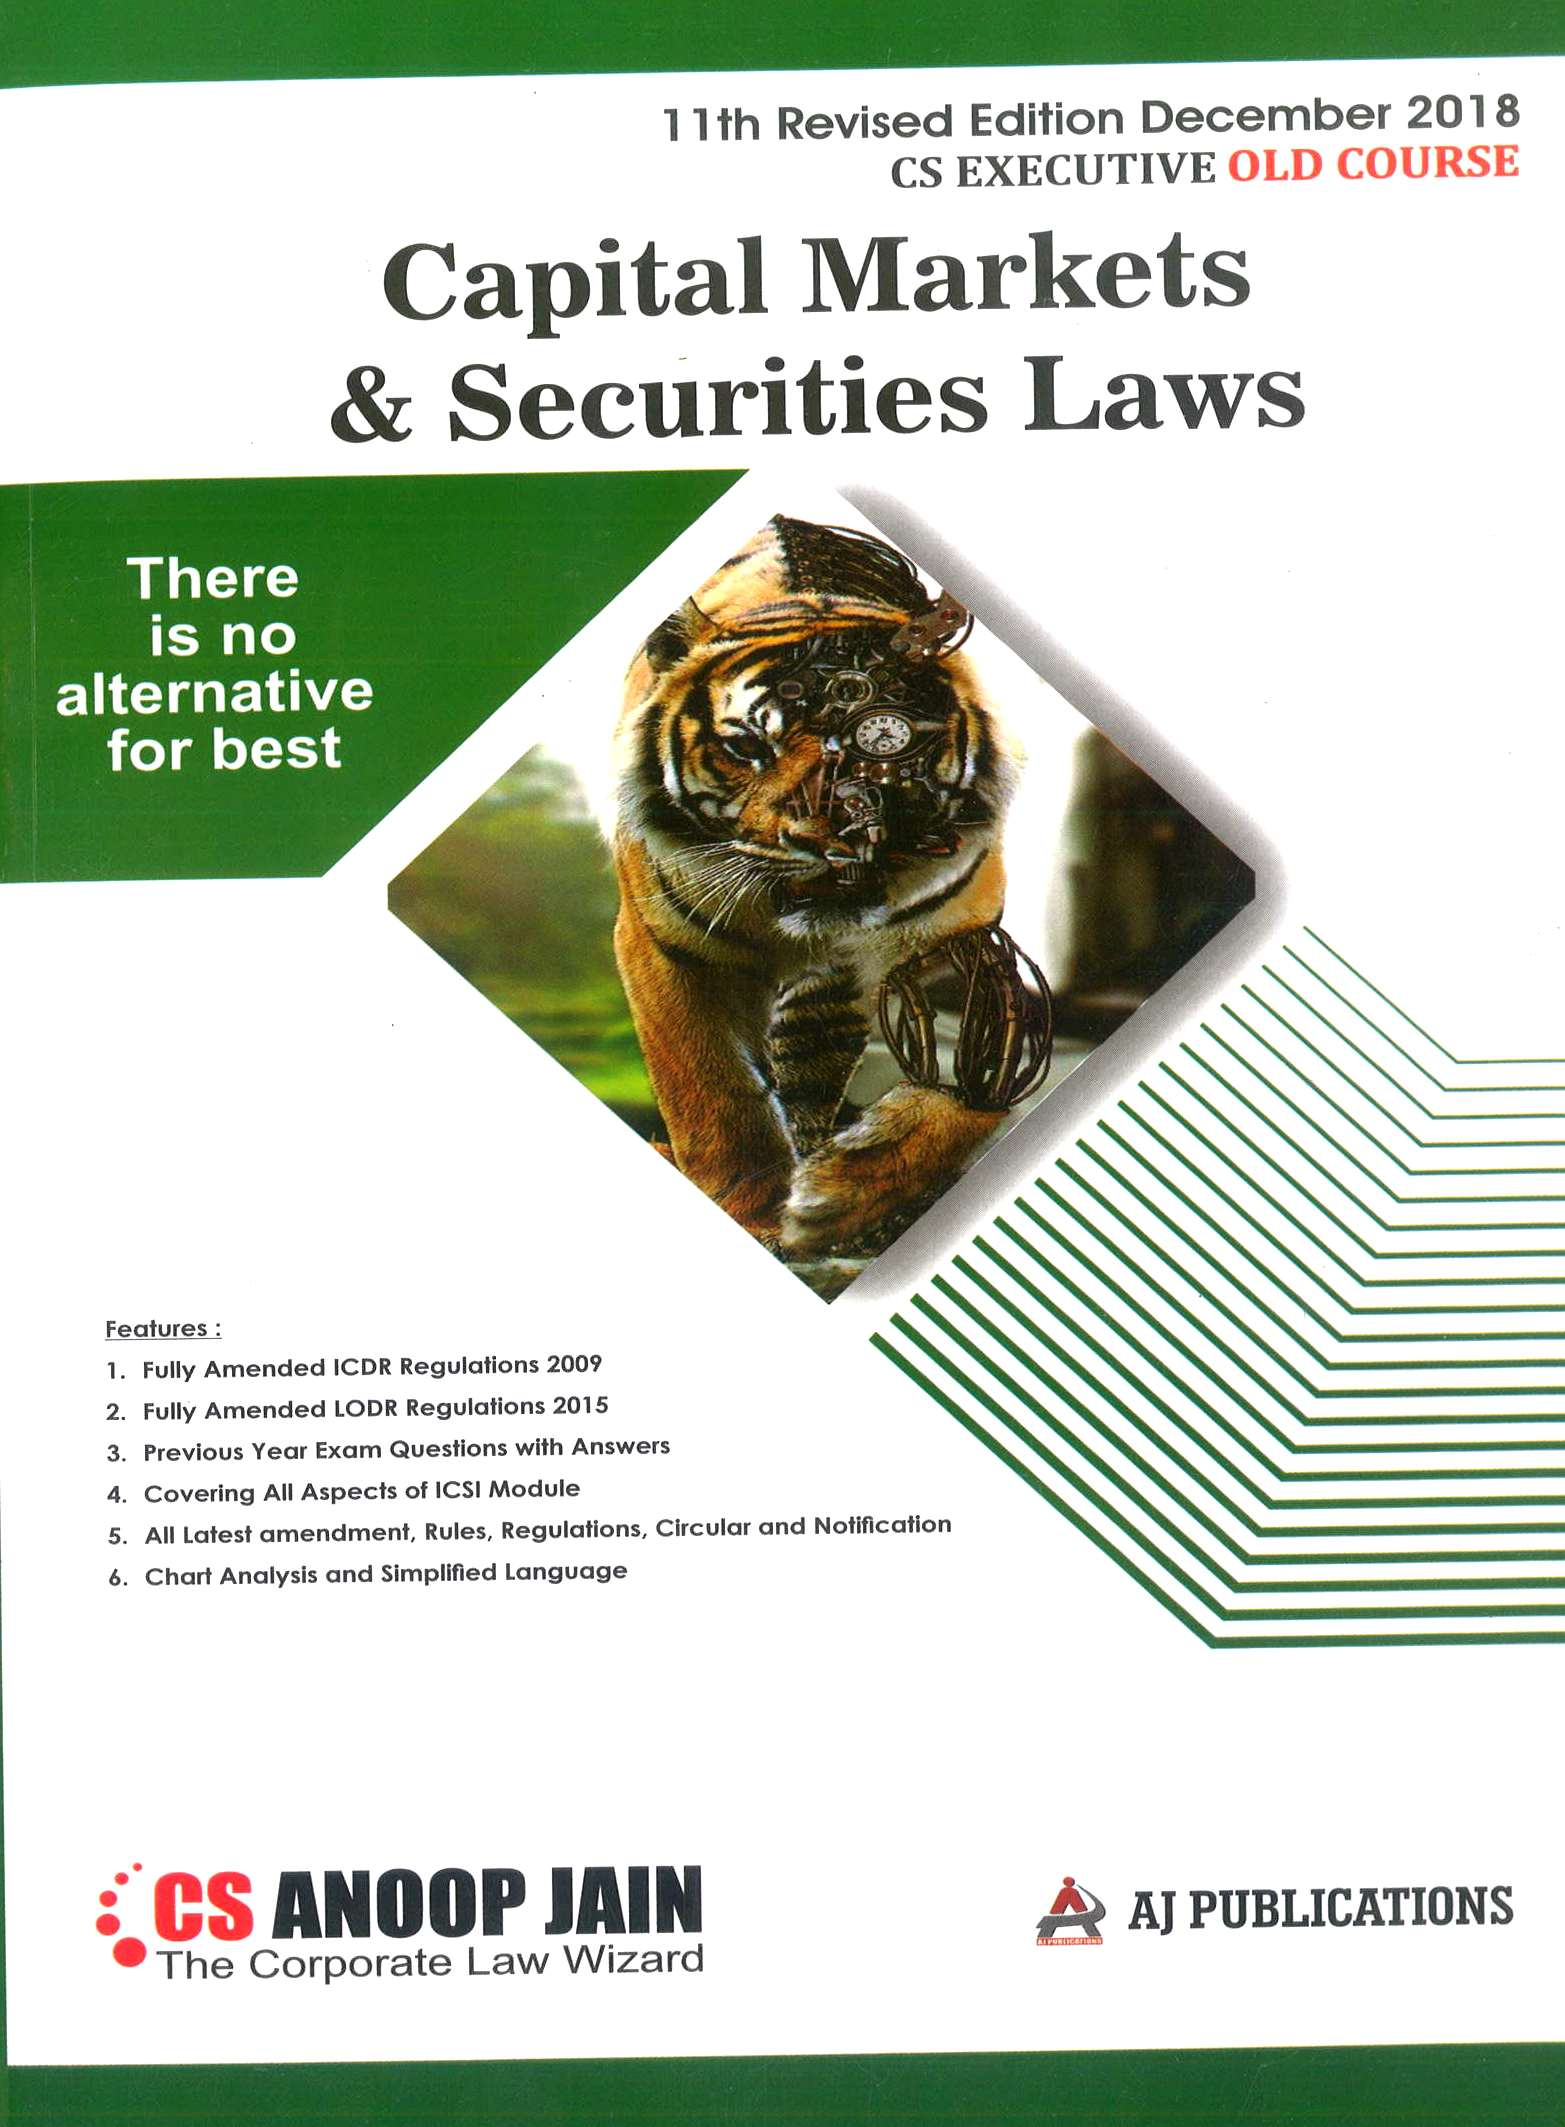 Sale Aj publication CS Executive Capital Market and Security Laws By CS  Anoop Jain Applicable for Dec